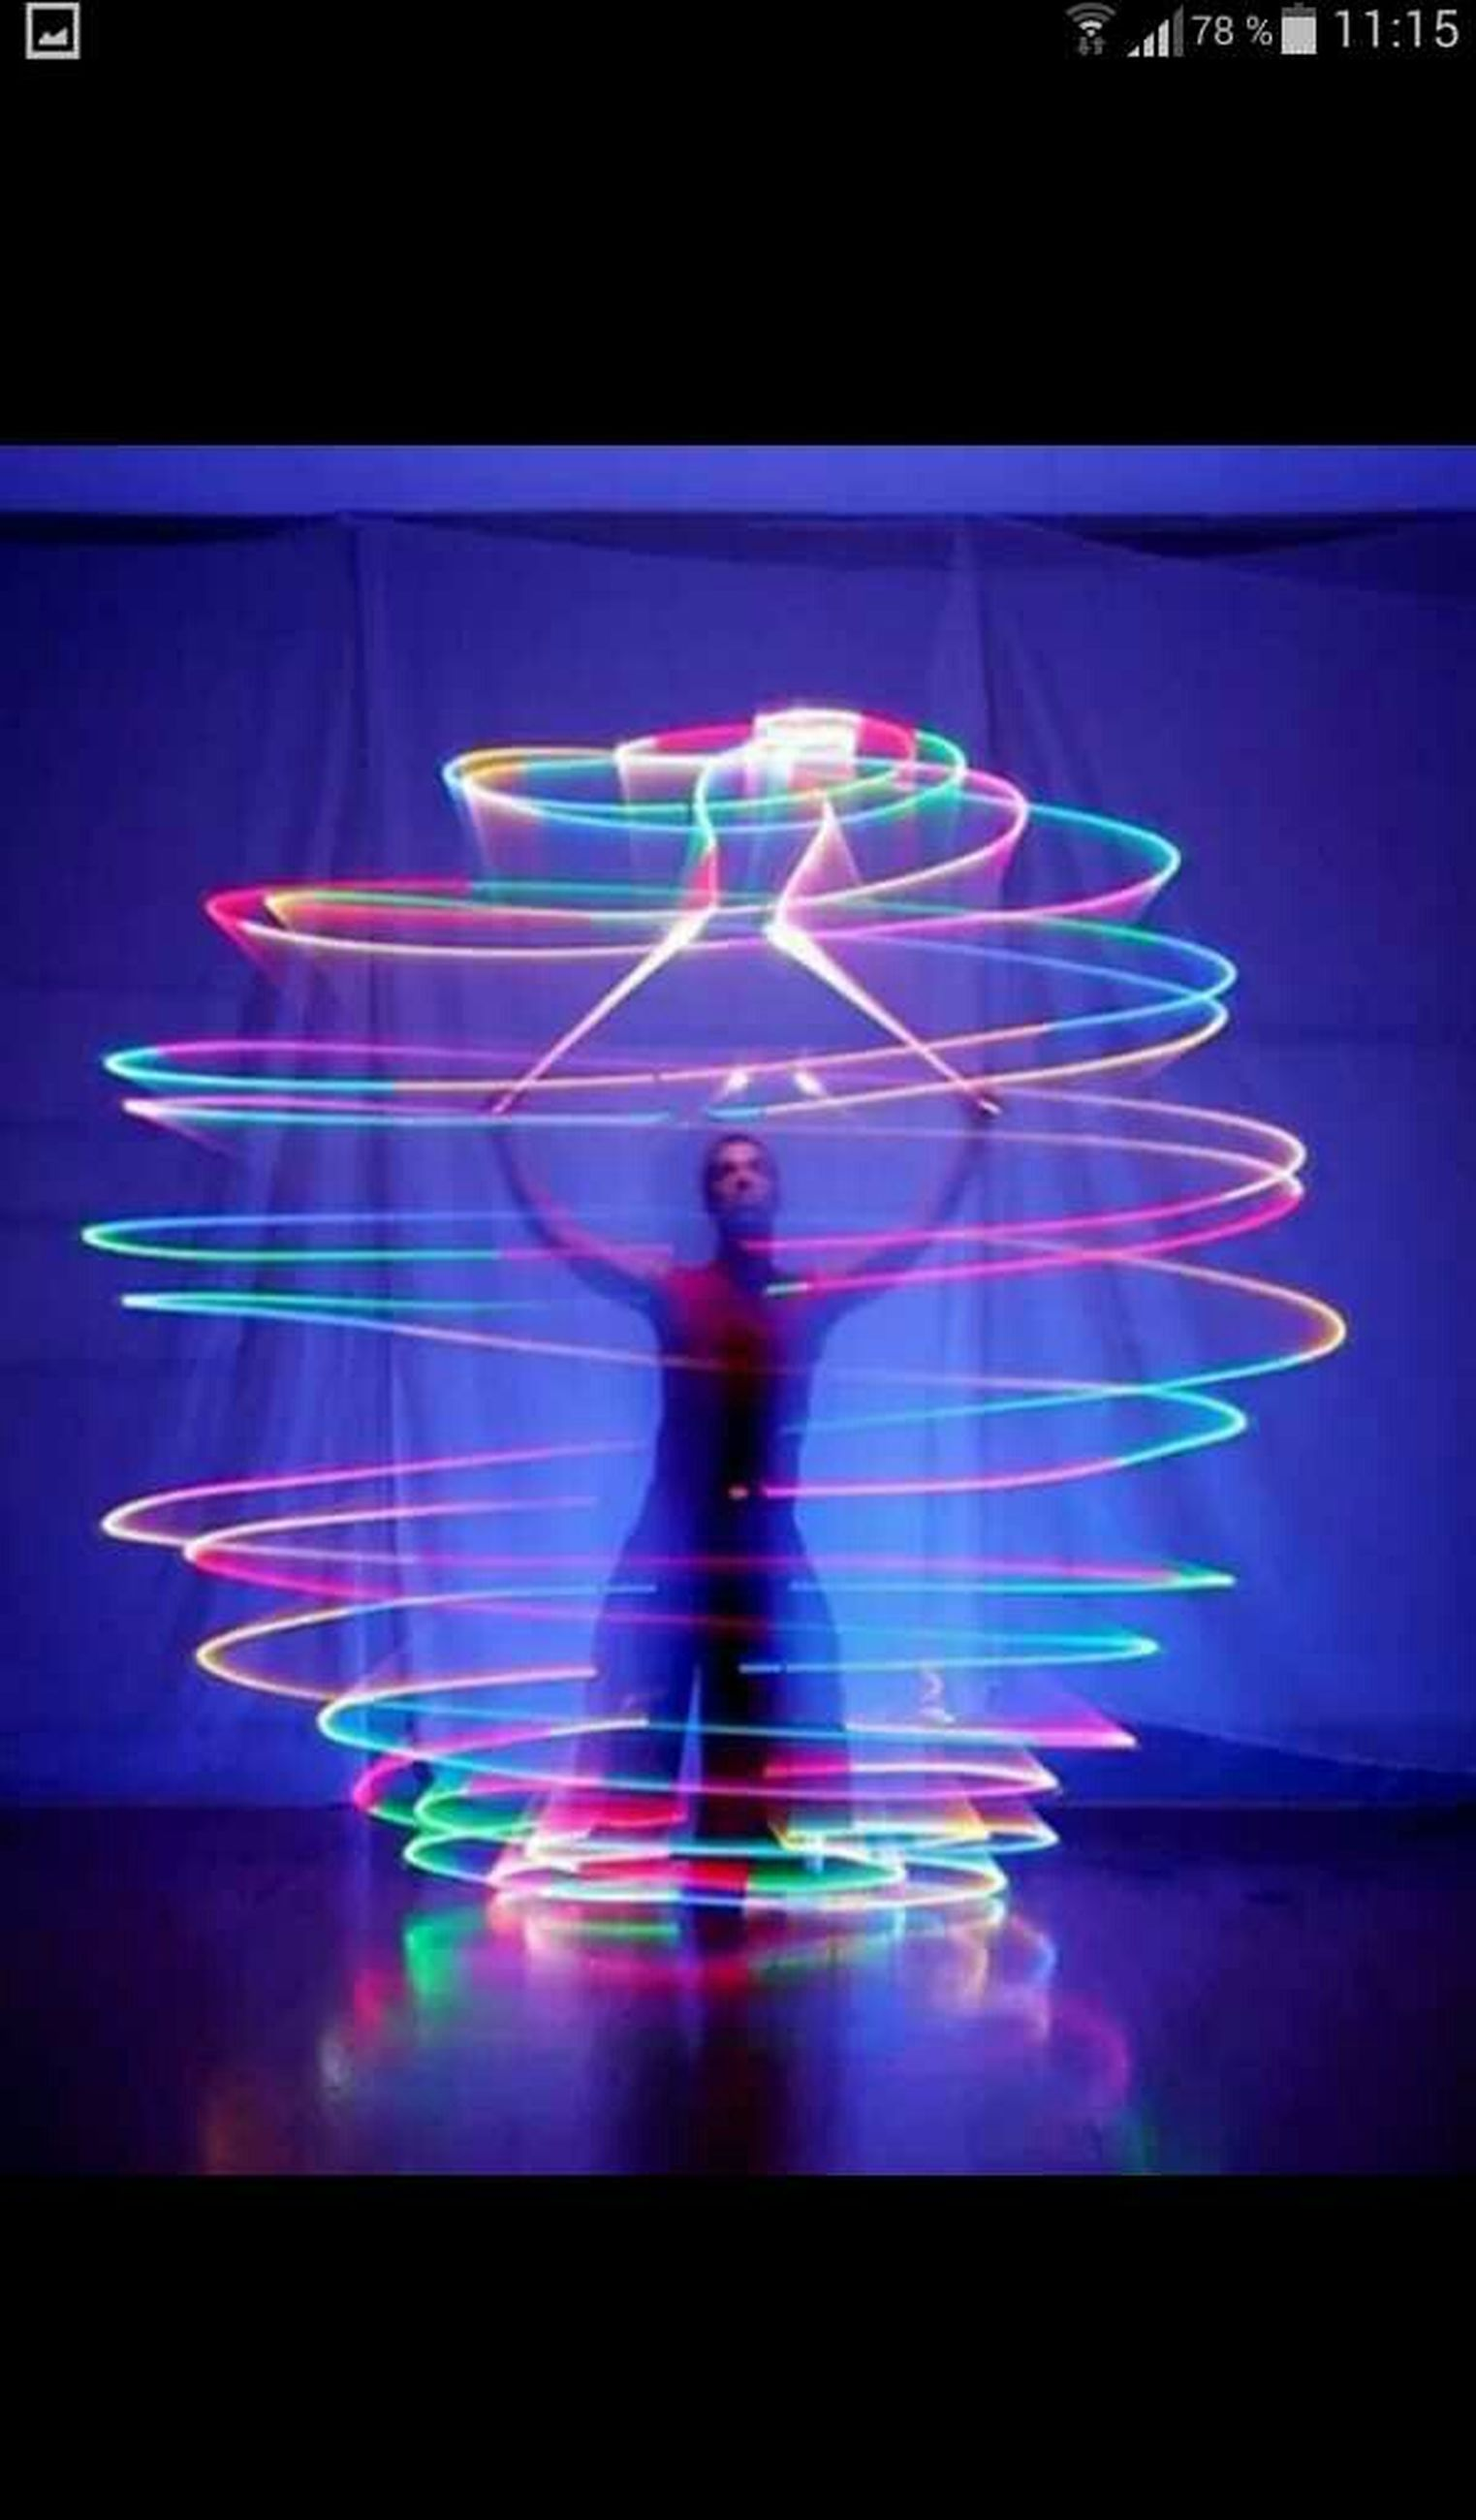 leisure activity, lifestyles, indoors, illuminated, full length, arts culture and entertainment, night, standing, enjoyment, reflection, motion, fun, water, rear view, men, blue, holding, multi colored